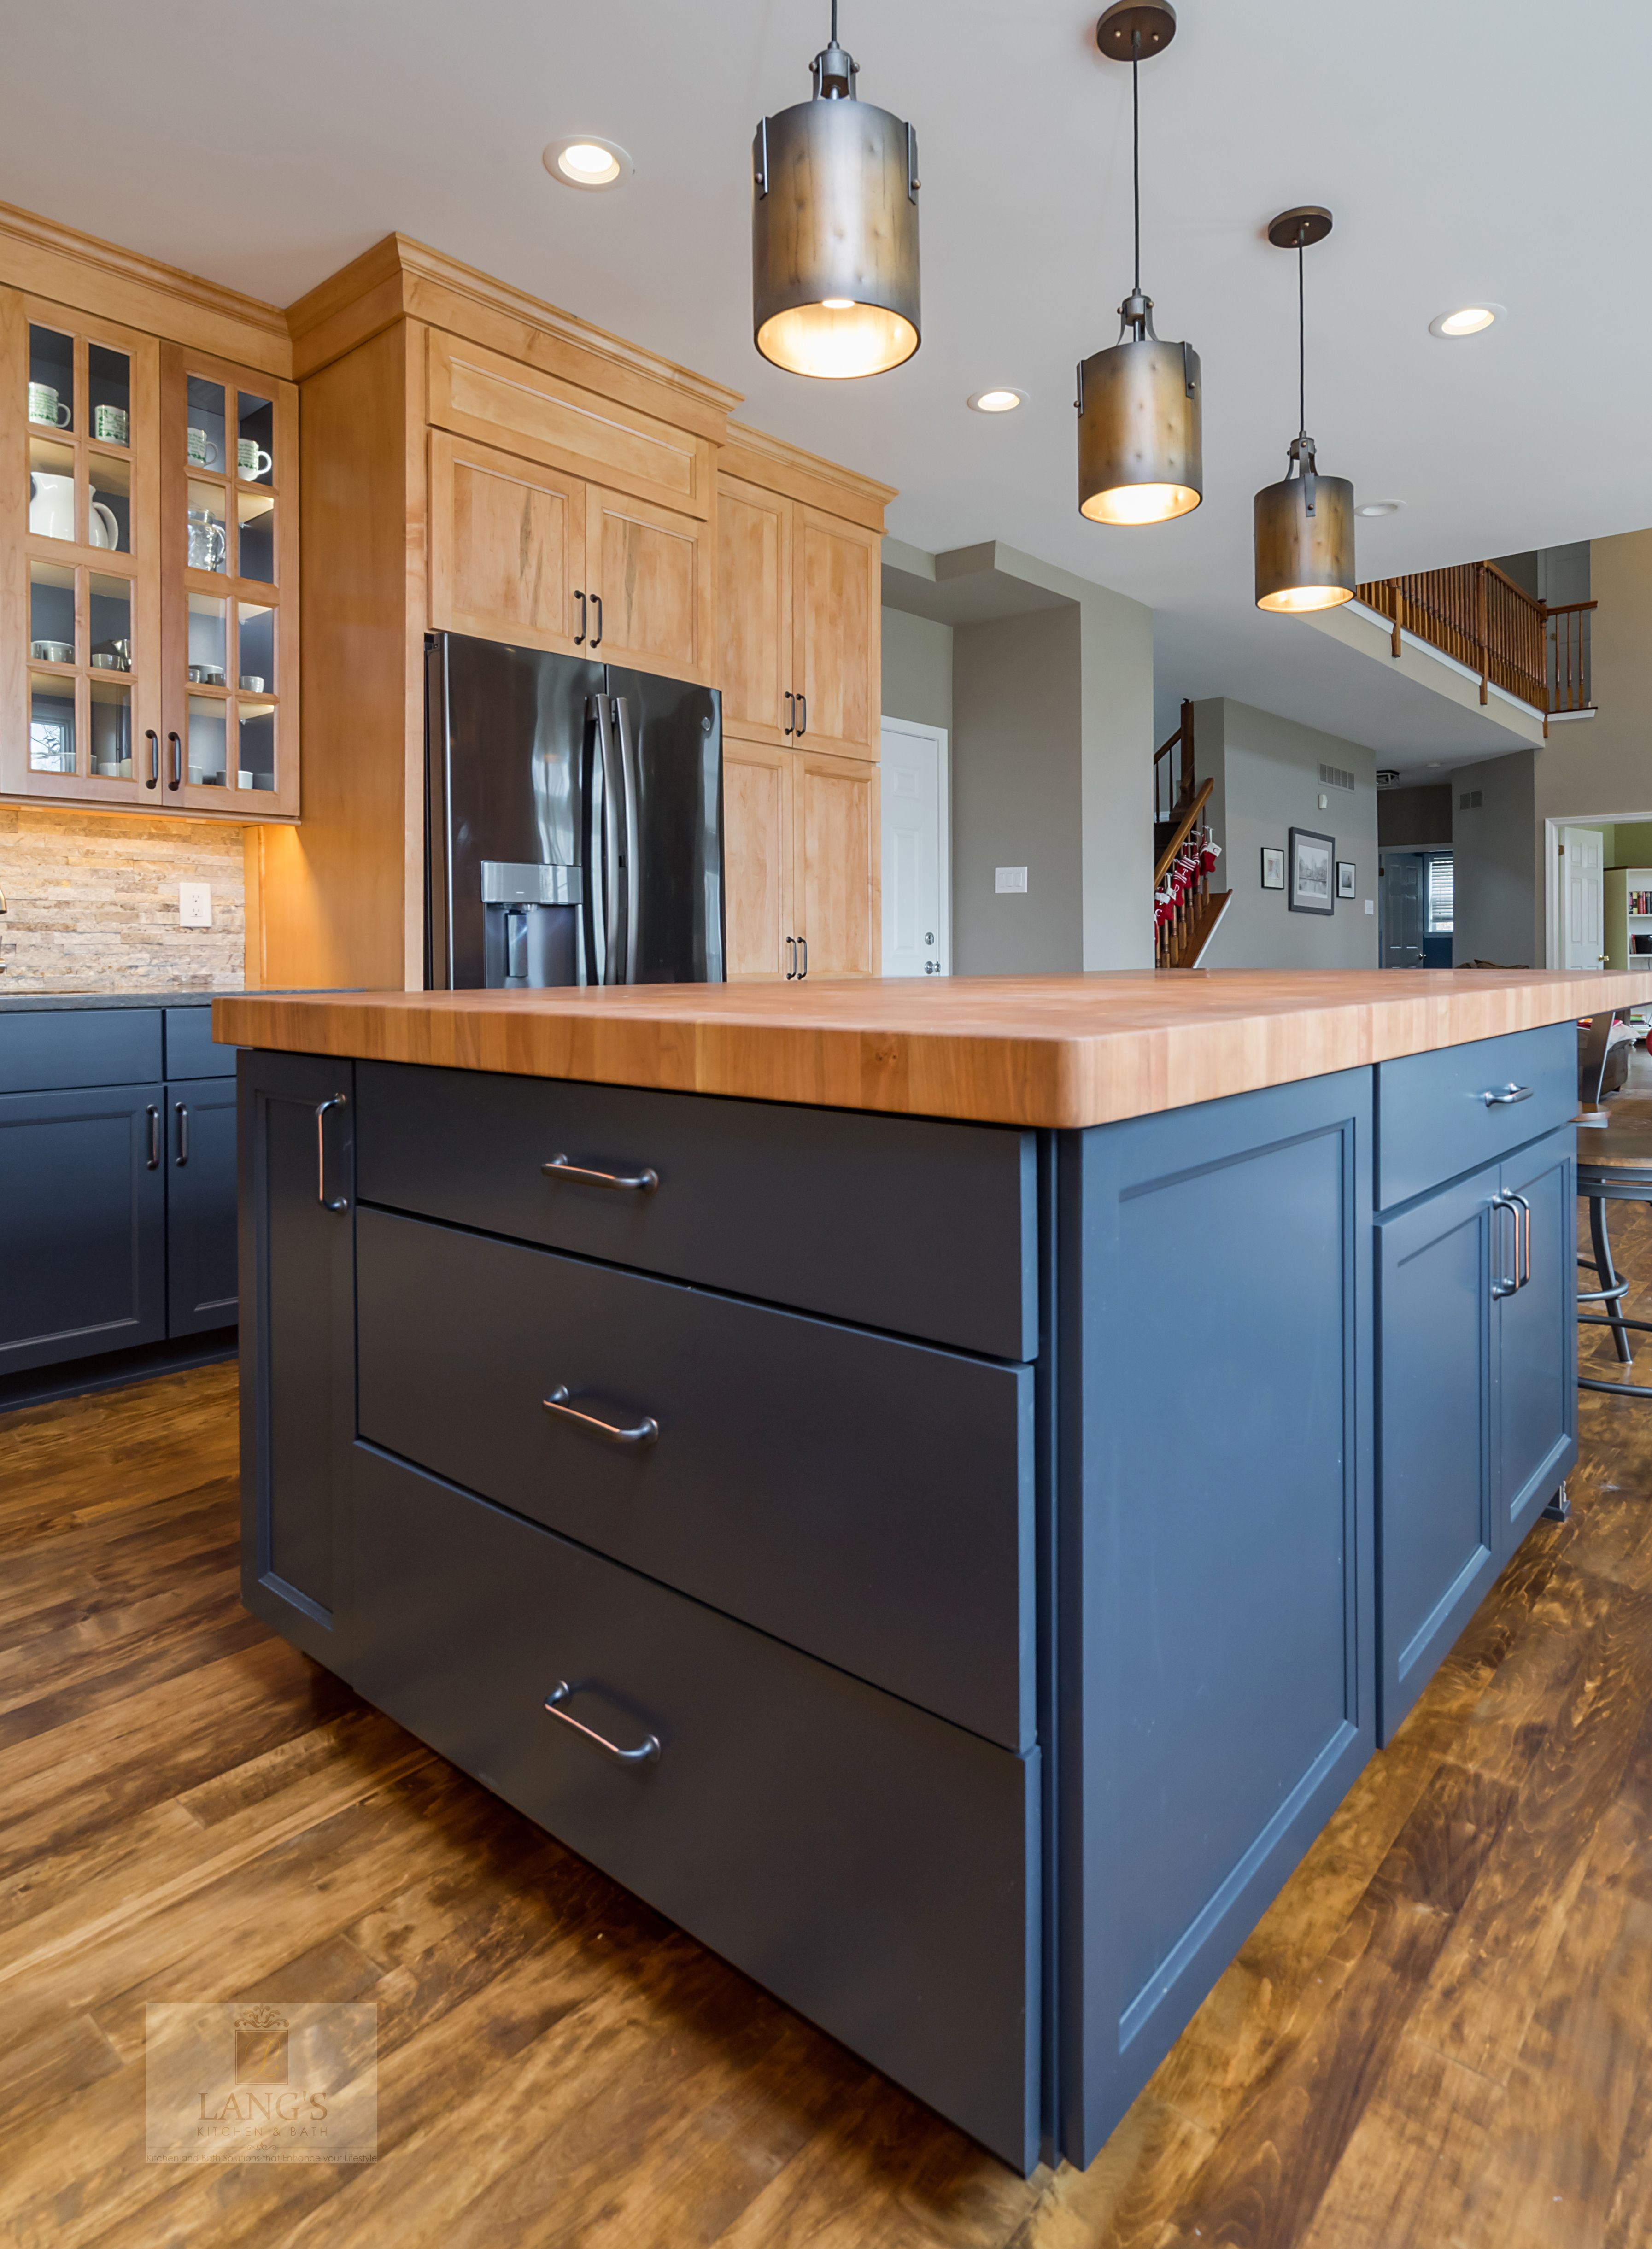 This Amazing Traditional Kitchen Design In Yardley Pa Incorporates Medium Wood Finish Ca Traditional Kitchen Design Galley Kitchen Design Kitchen Design Small